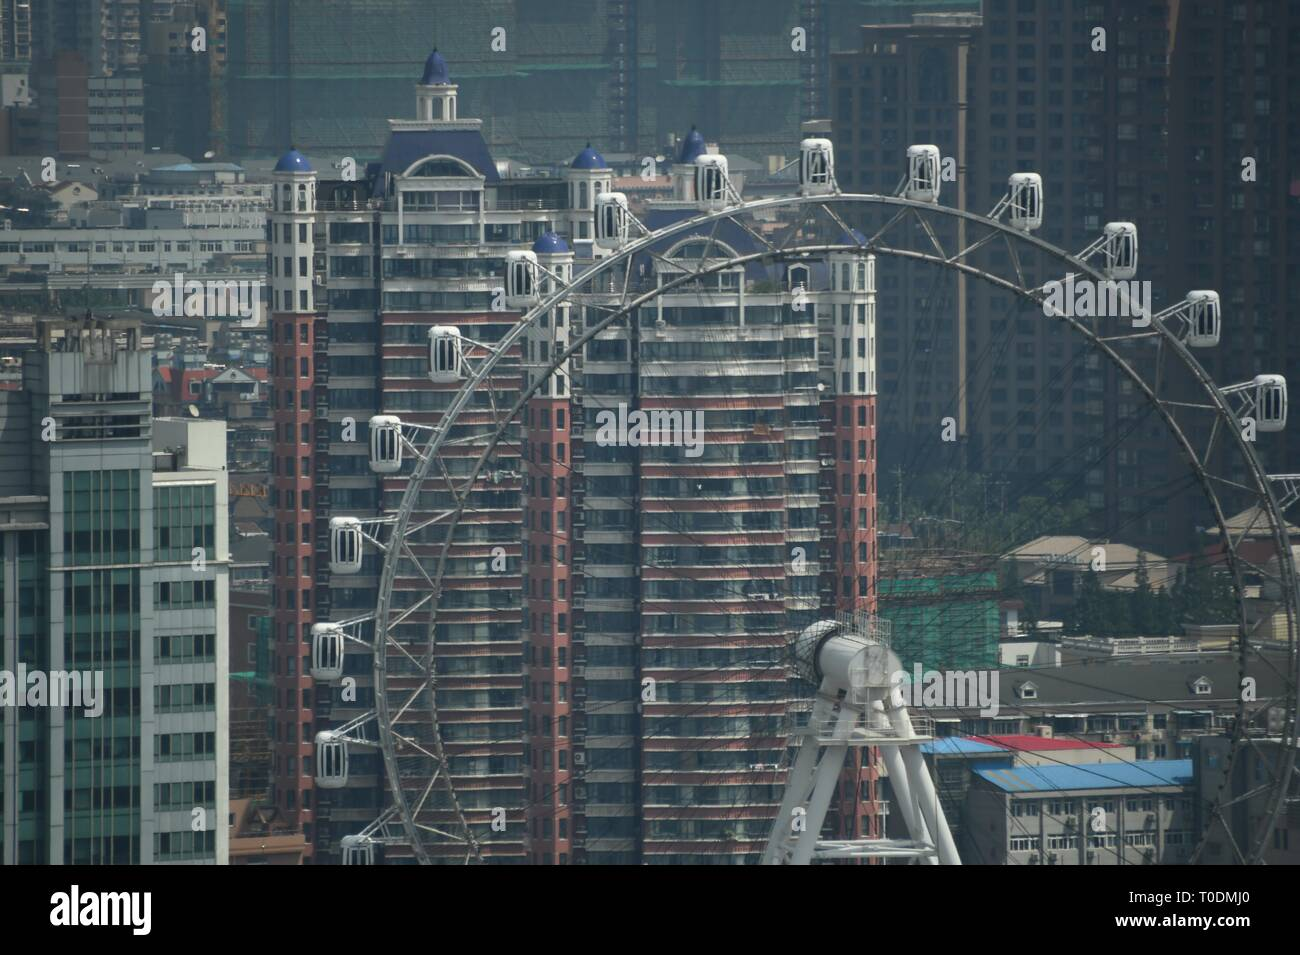 Shanghai - the most fascinating and charming city in the world - Stock Image